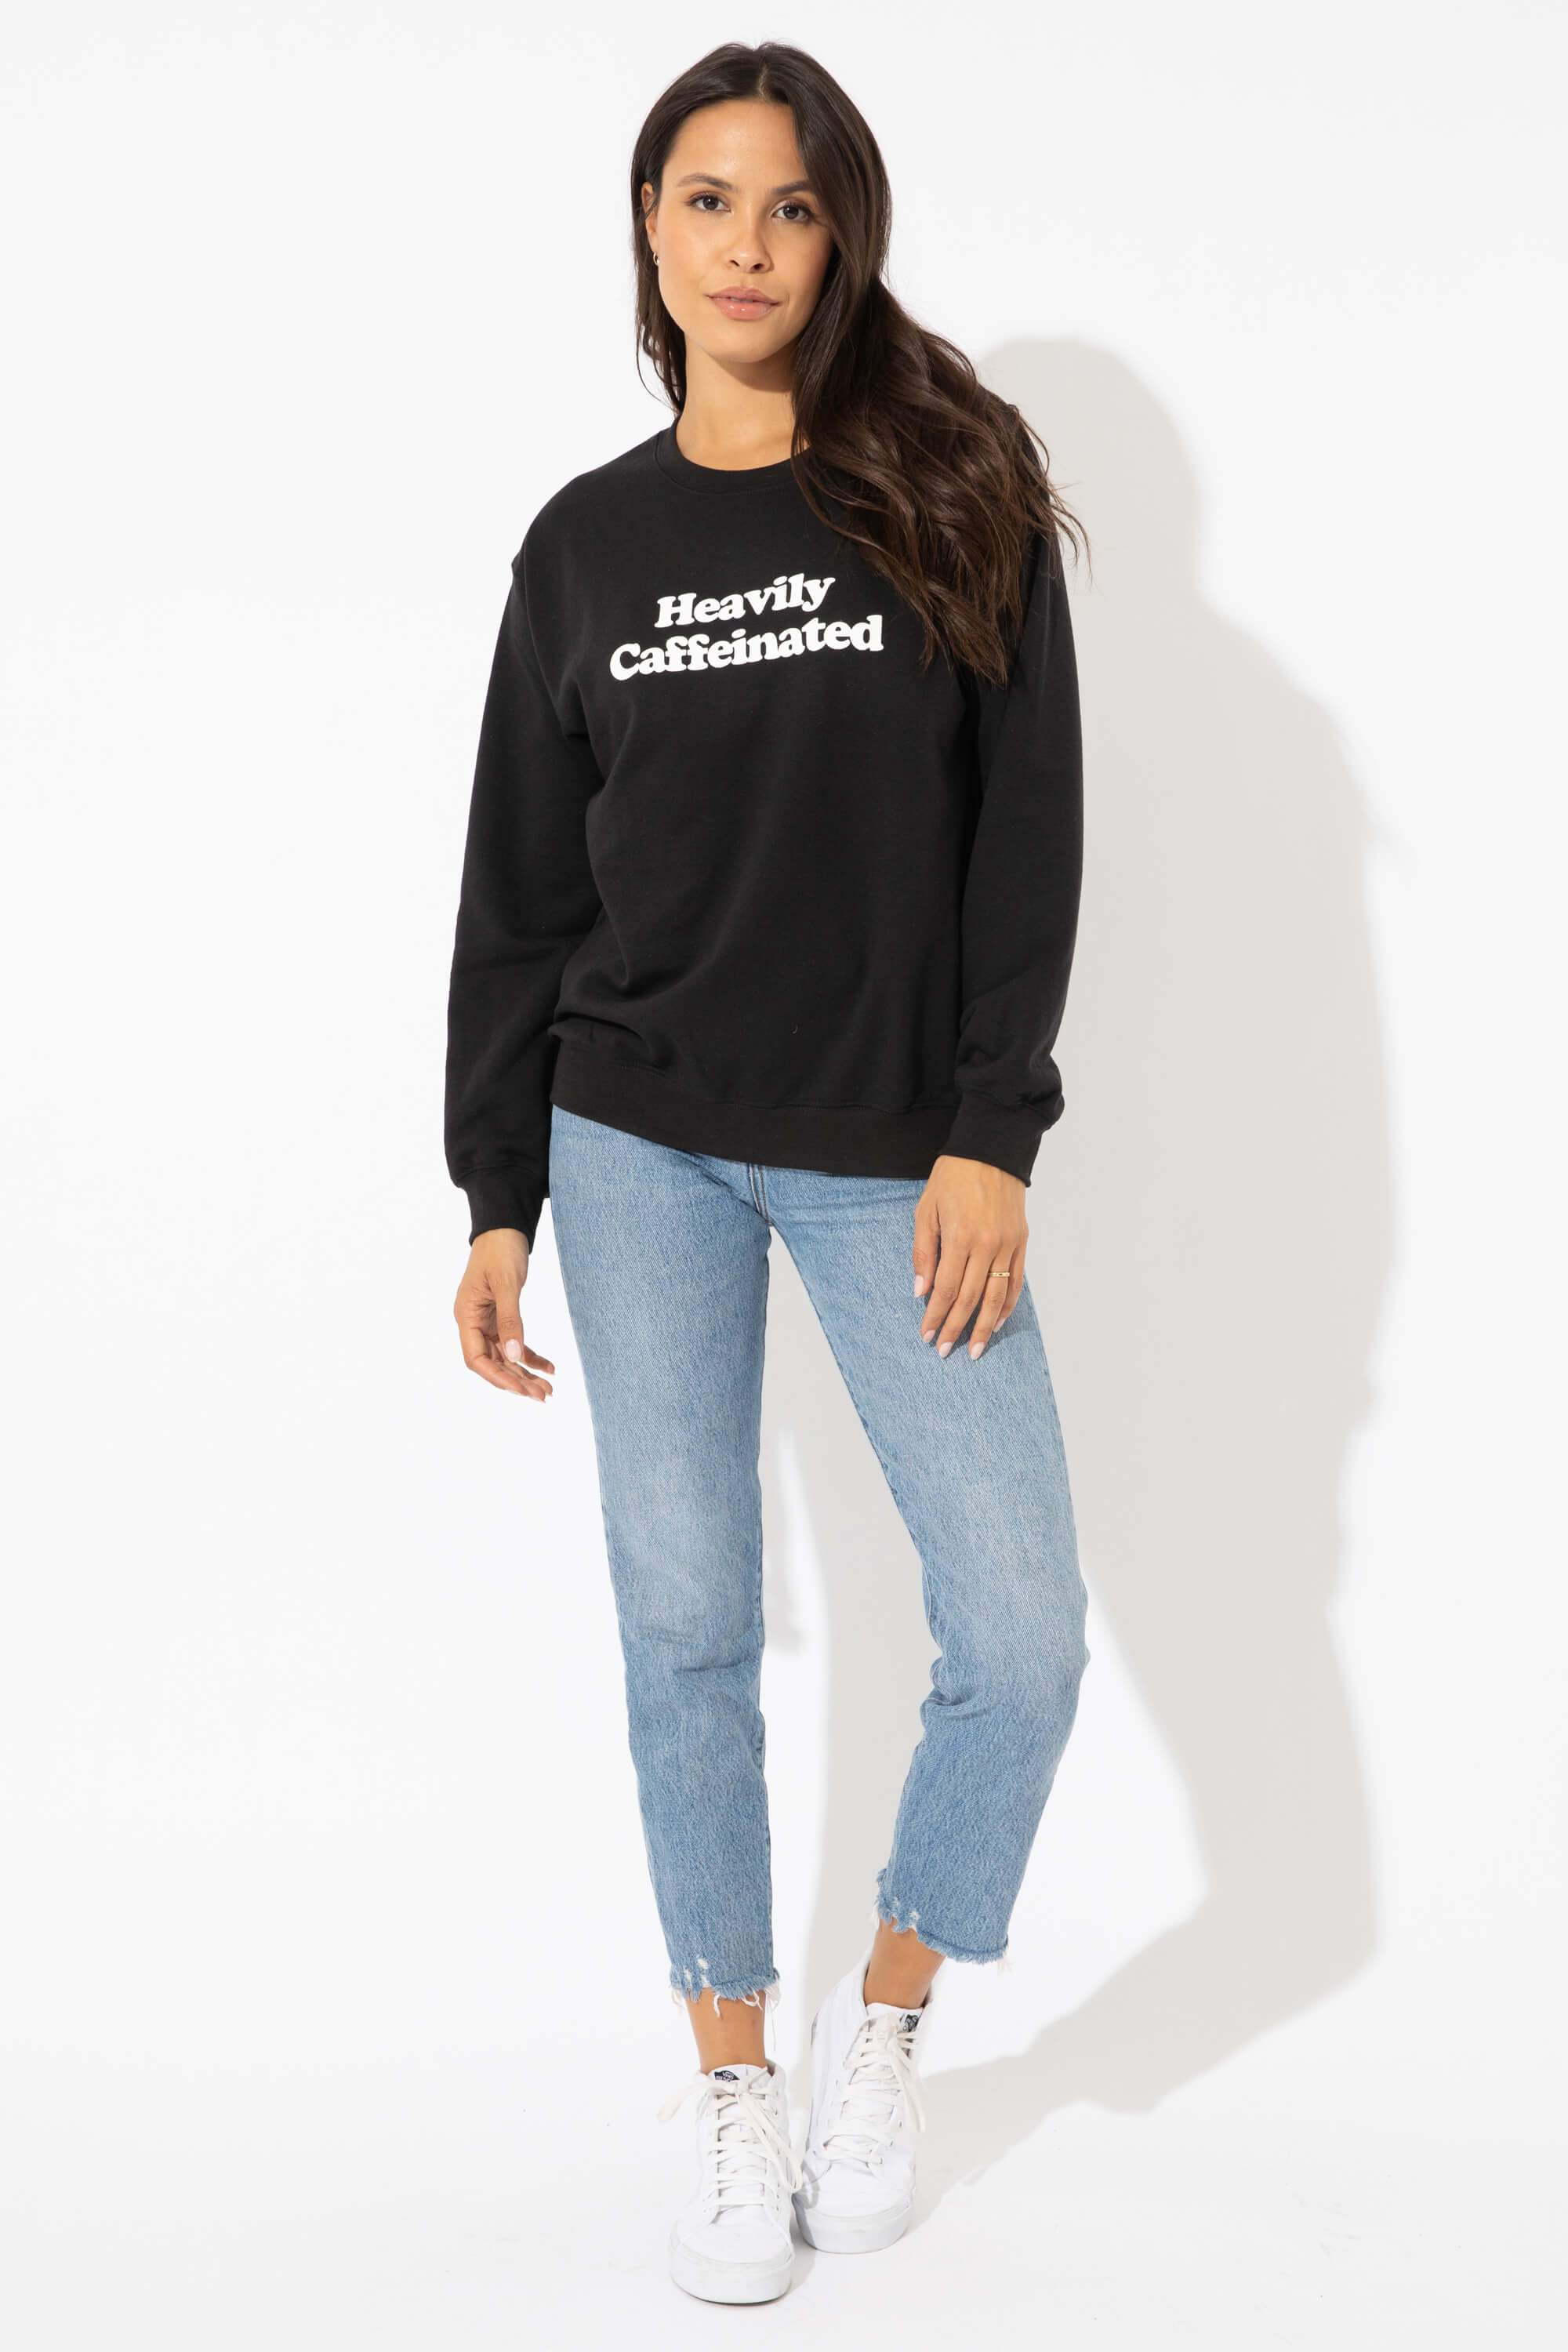 Heavily Caffeinated Willow Sweatshirt